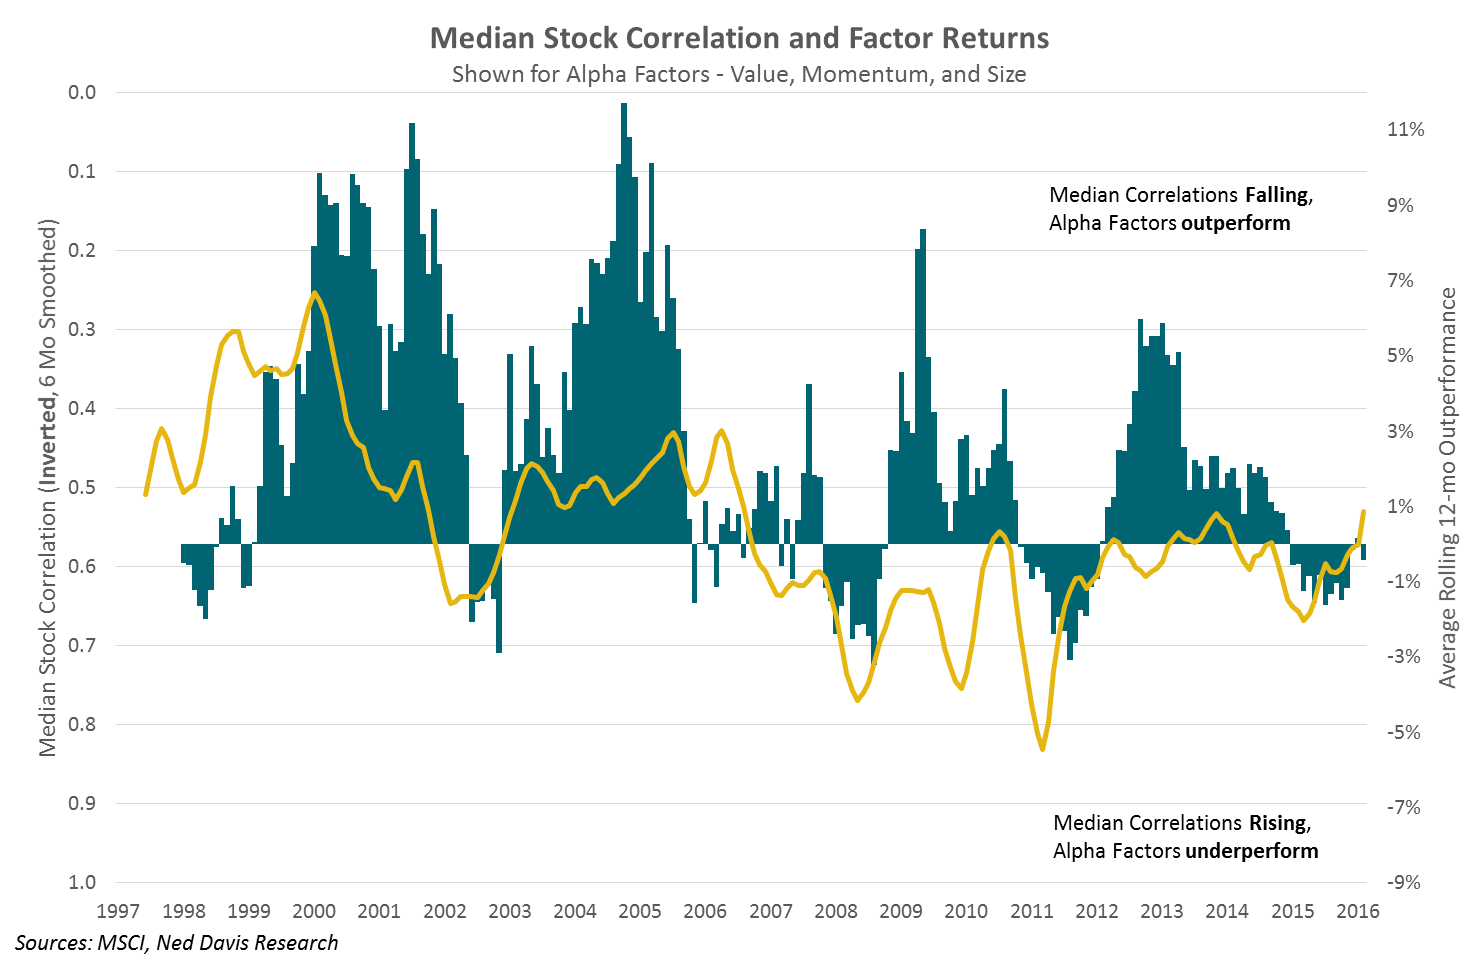 median-stock-correlation-and-factor-returns